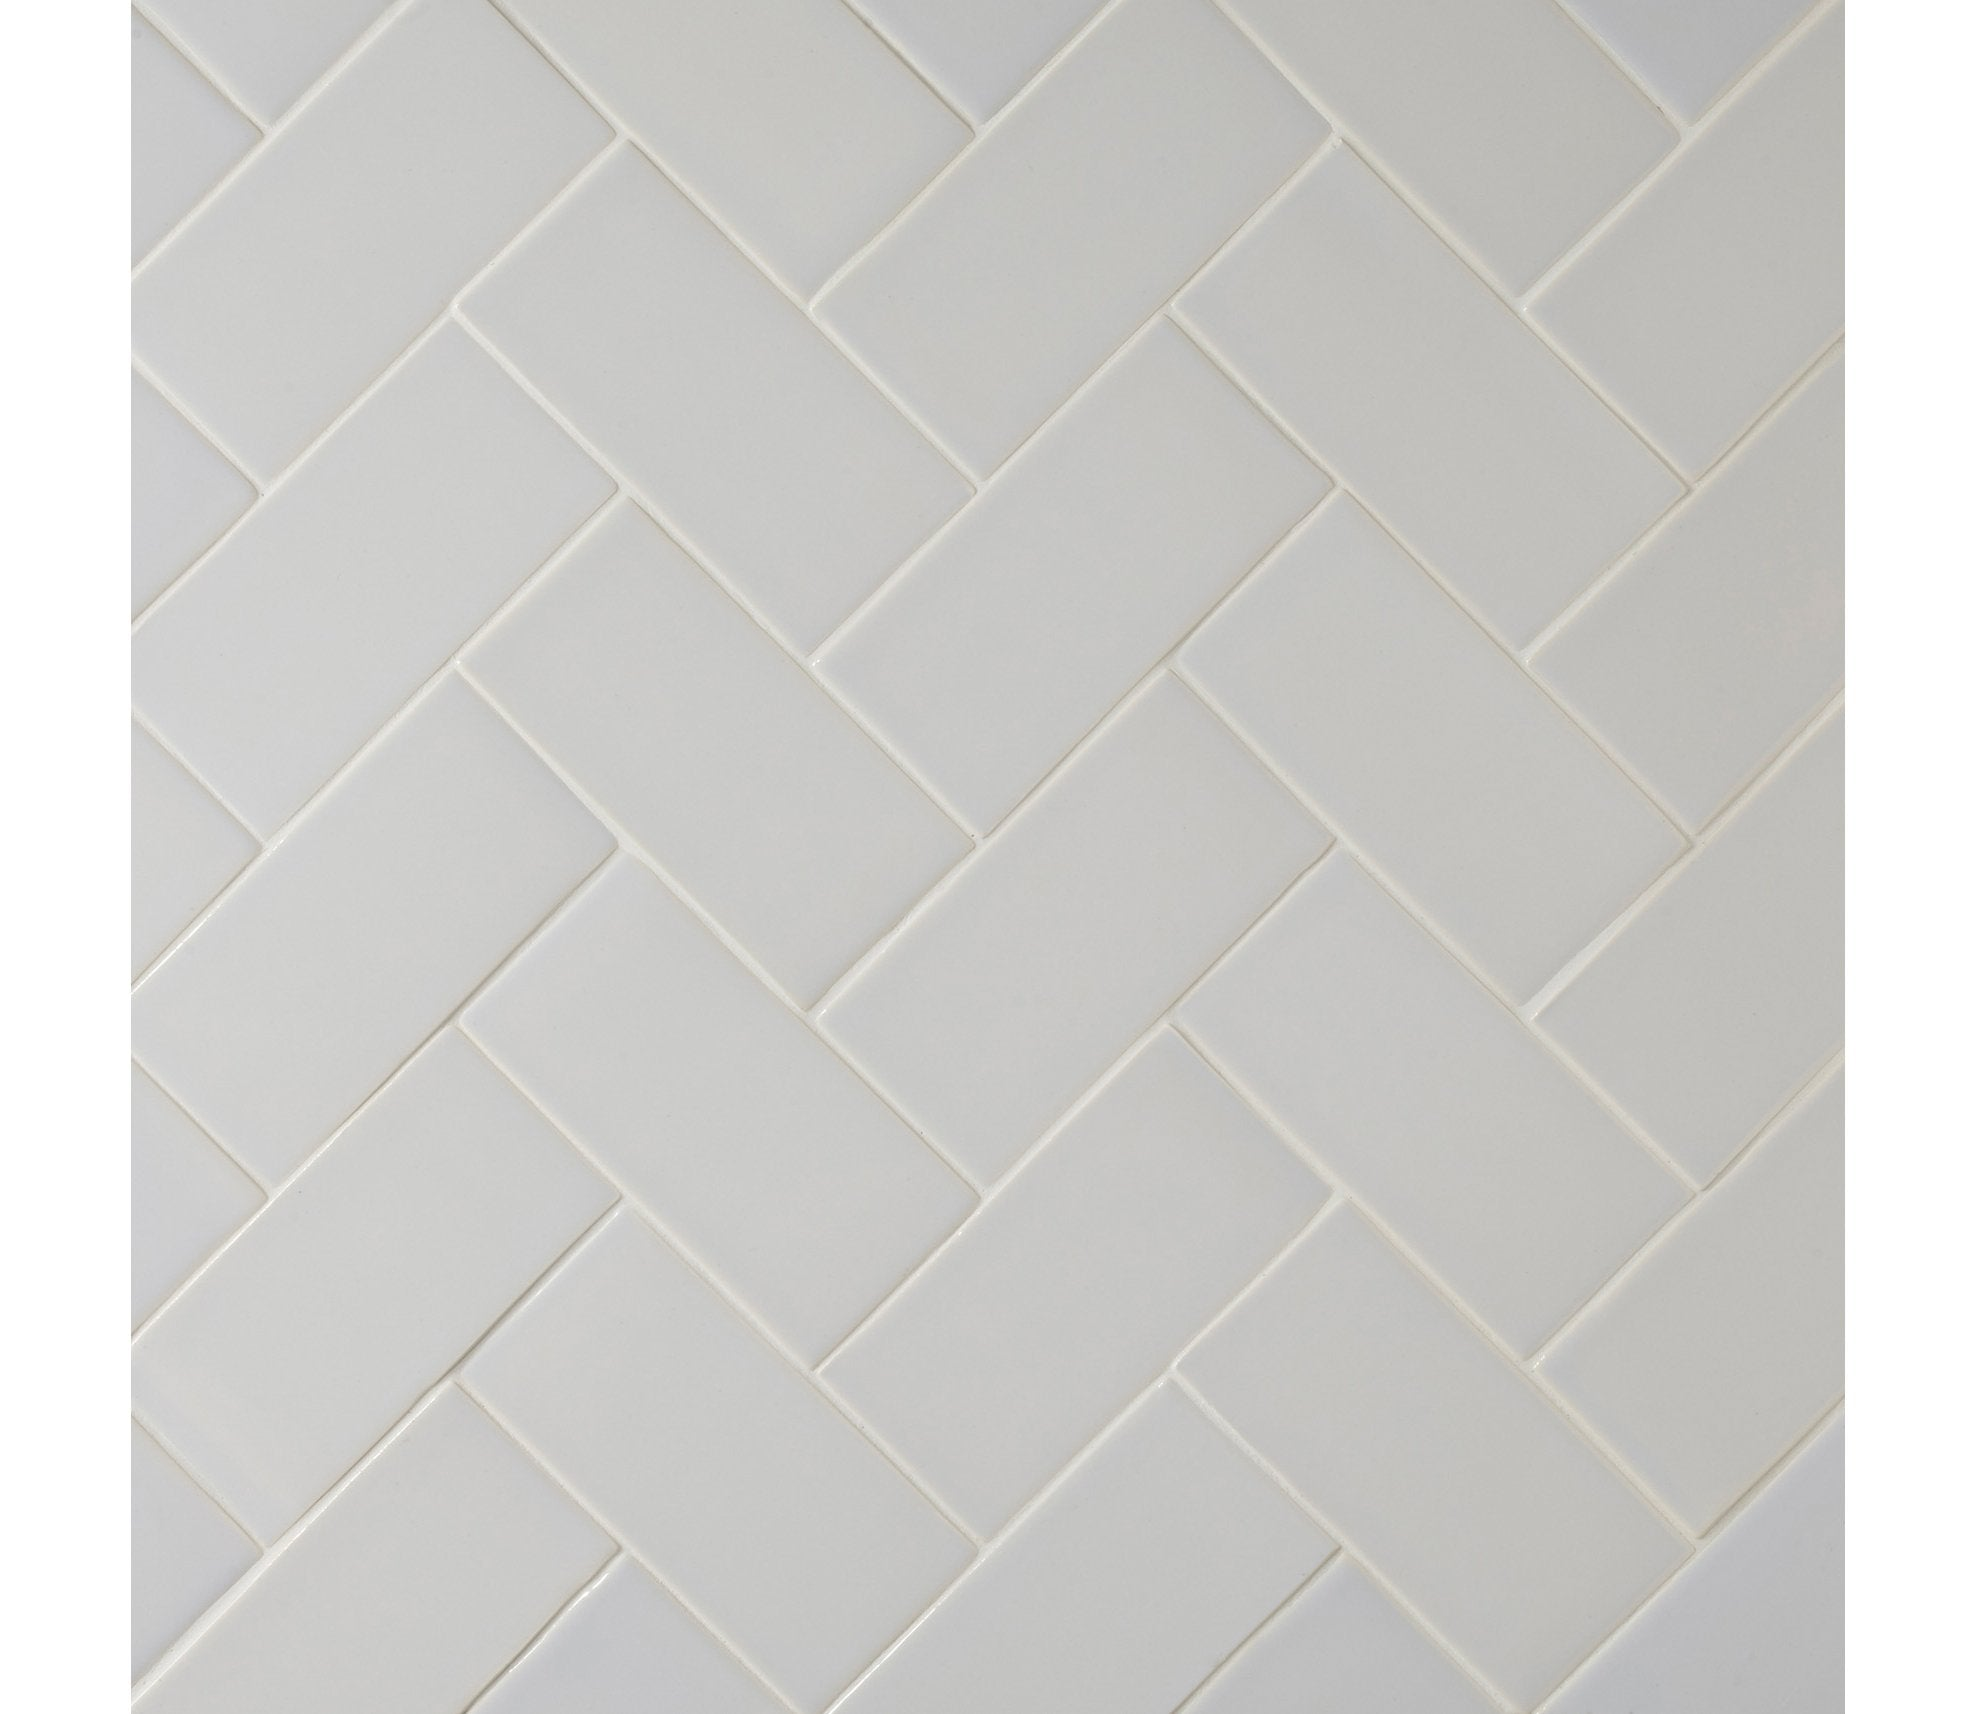 Hanley Traditional Tiles Product Image 22